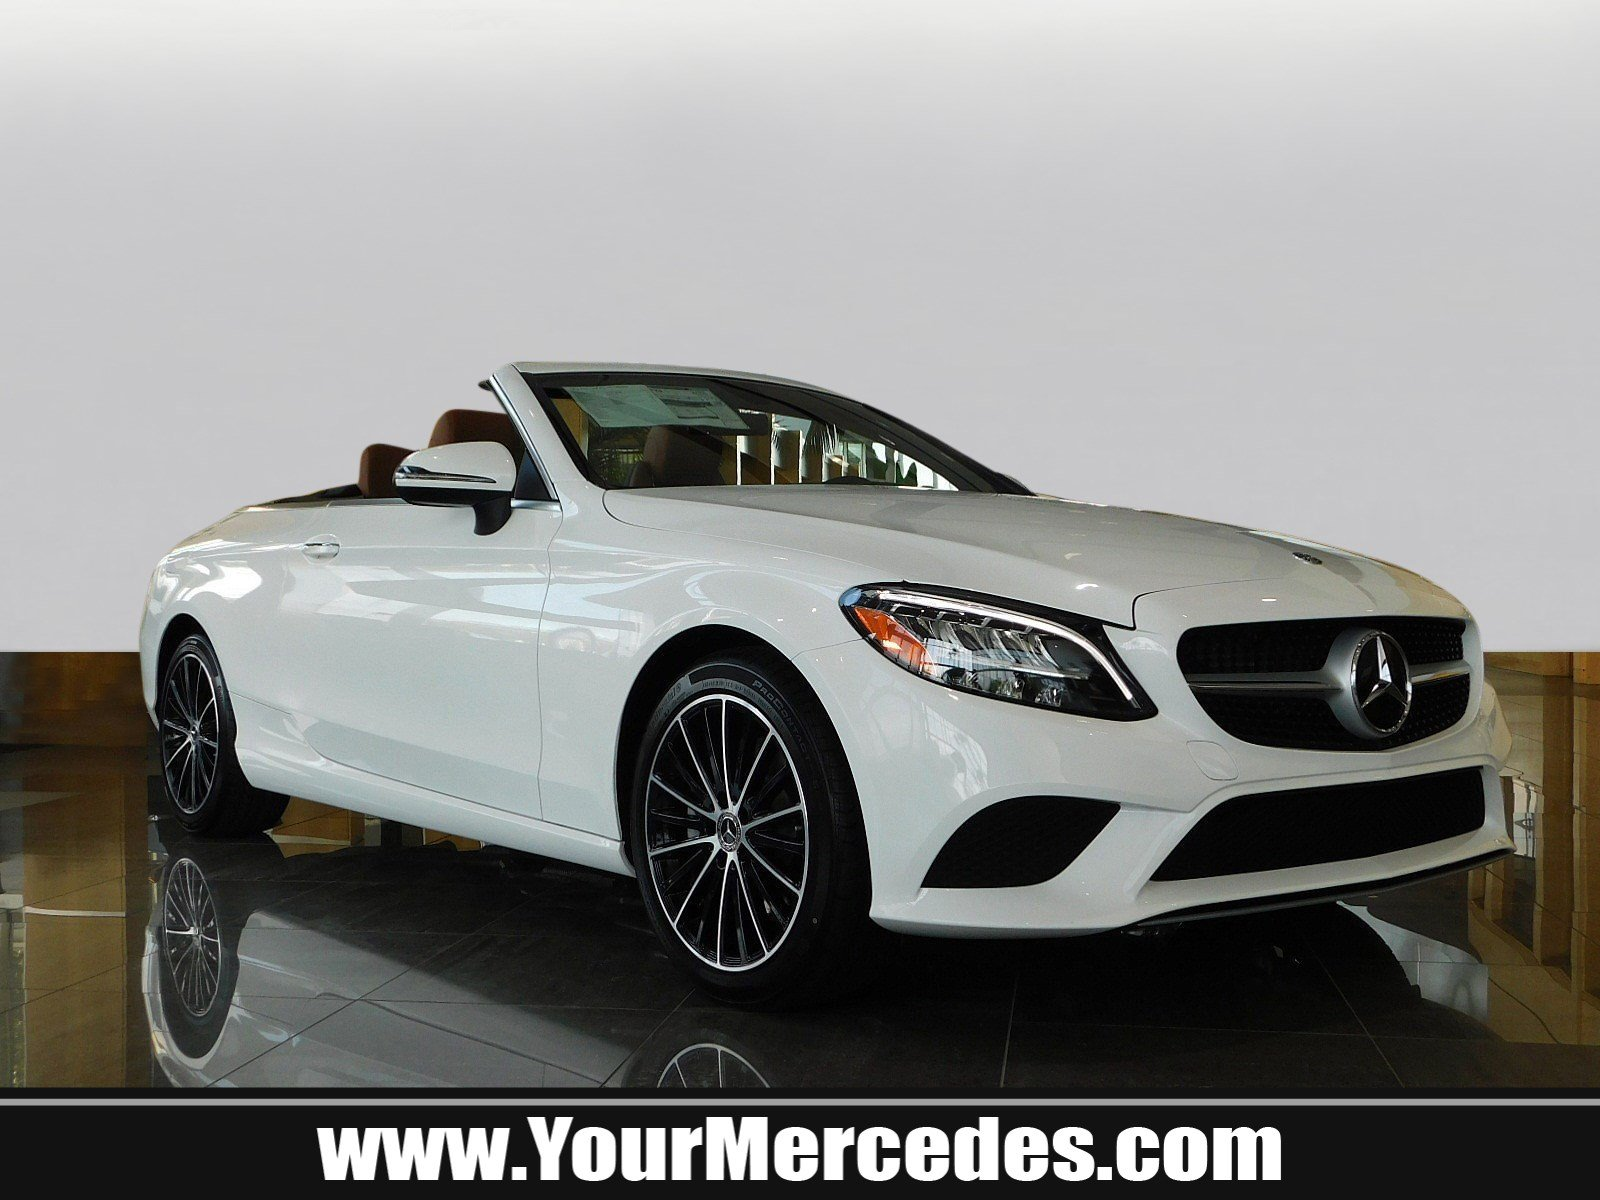 New 2019 Mercedes Benz C Class C 300 CABRIOLET in West Chester